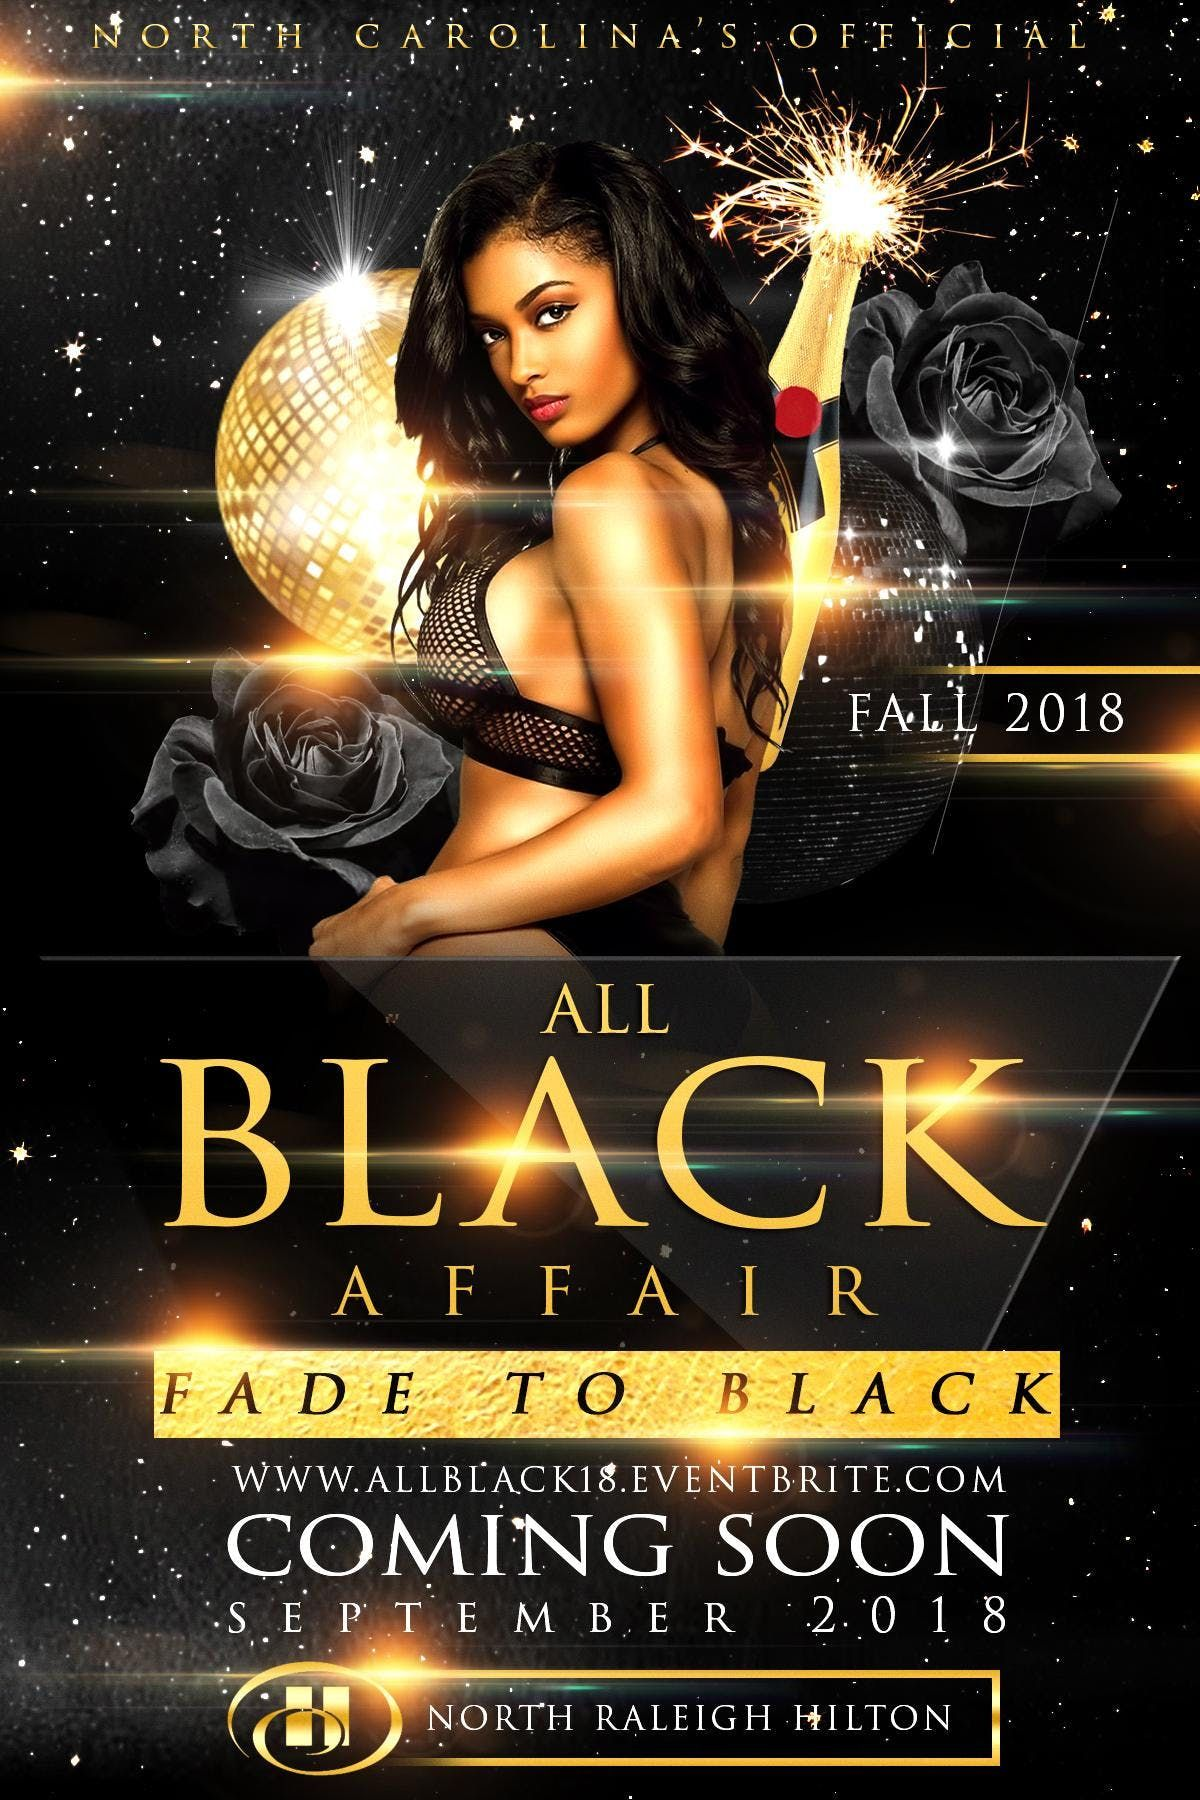 Black people speed dating raleigh nc events november 2018